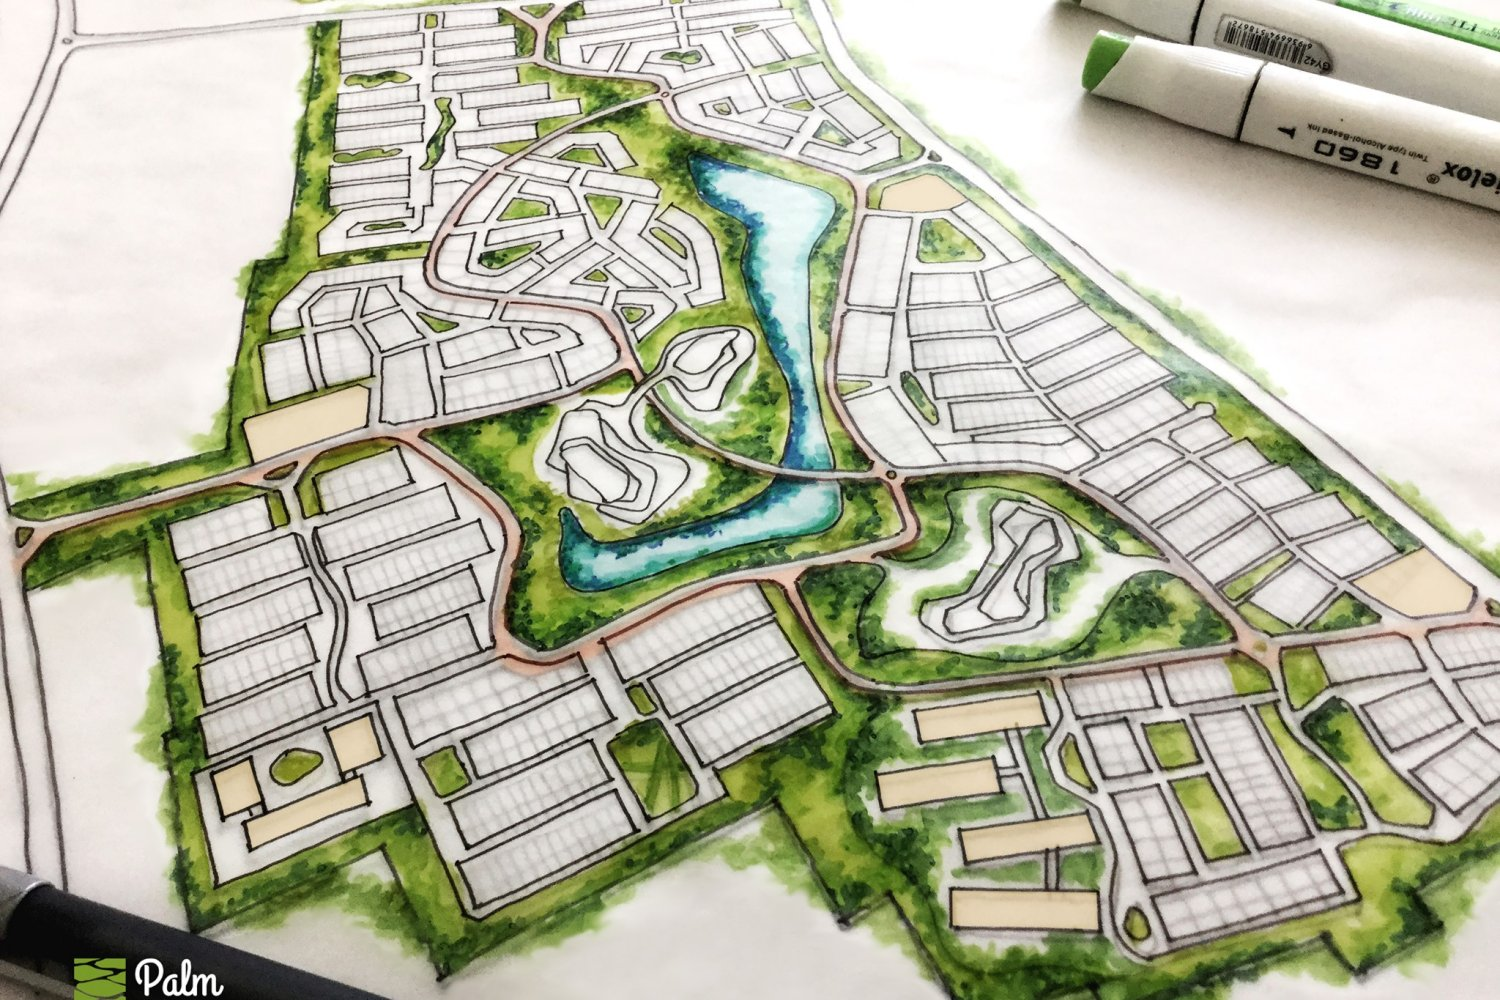 Trần Anh Ecological City